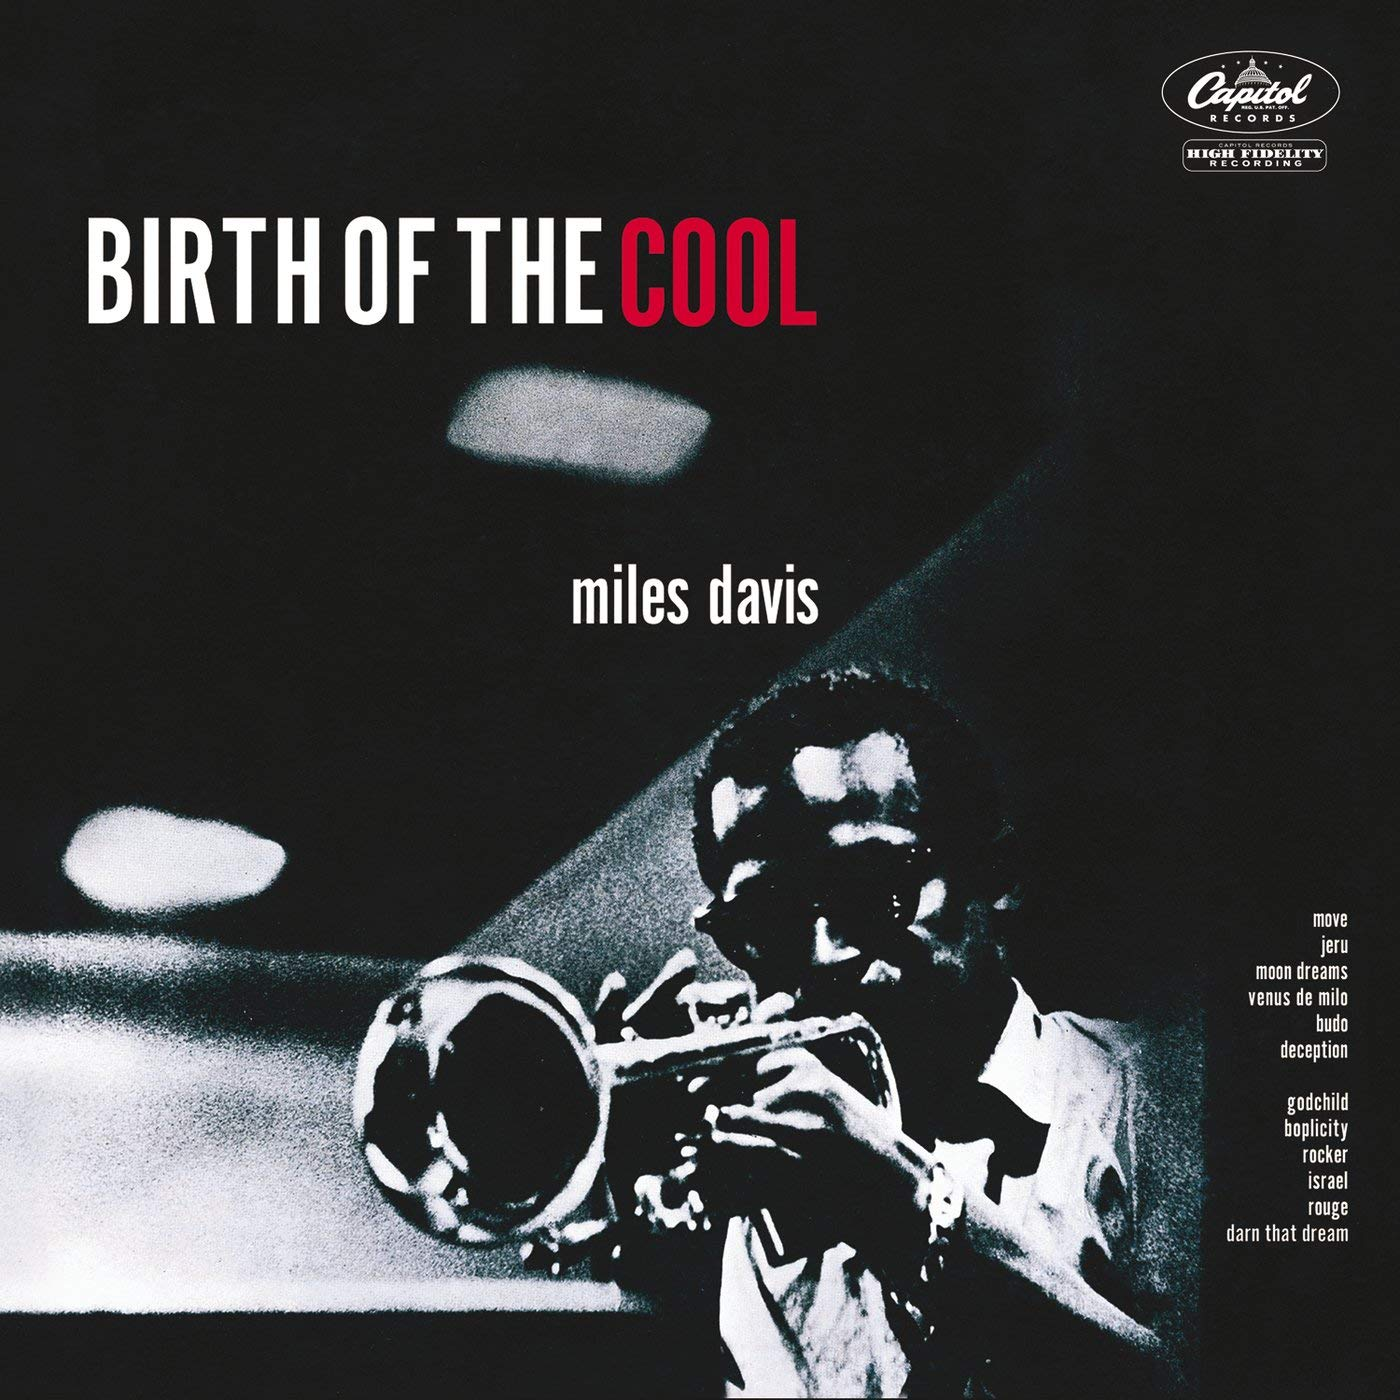 BIRTH OF THE COOL (VINYL) - Vinyl Sound